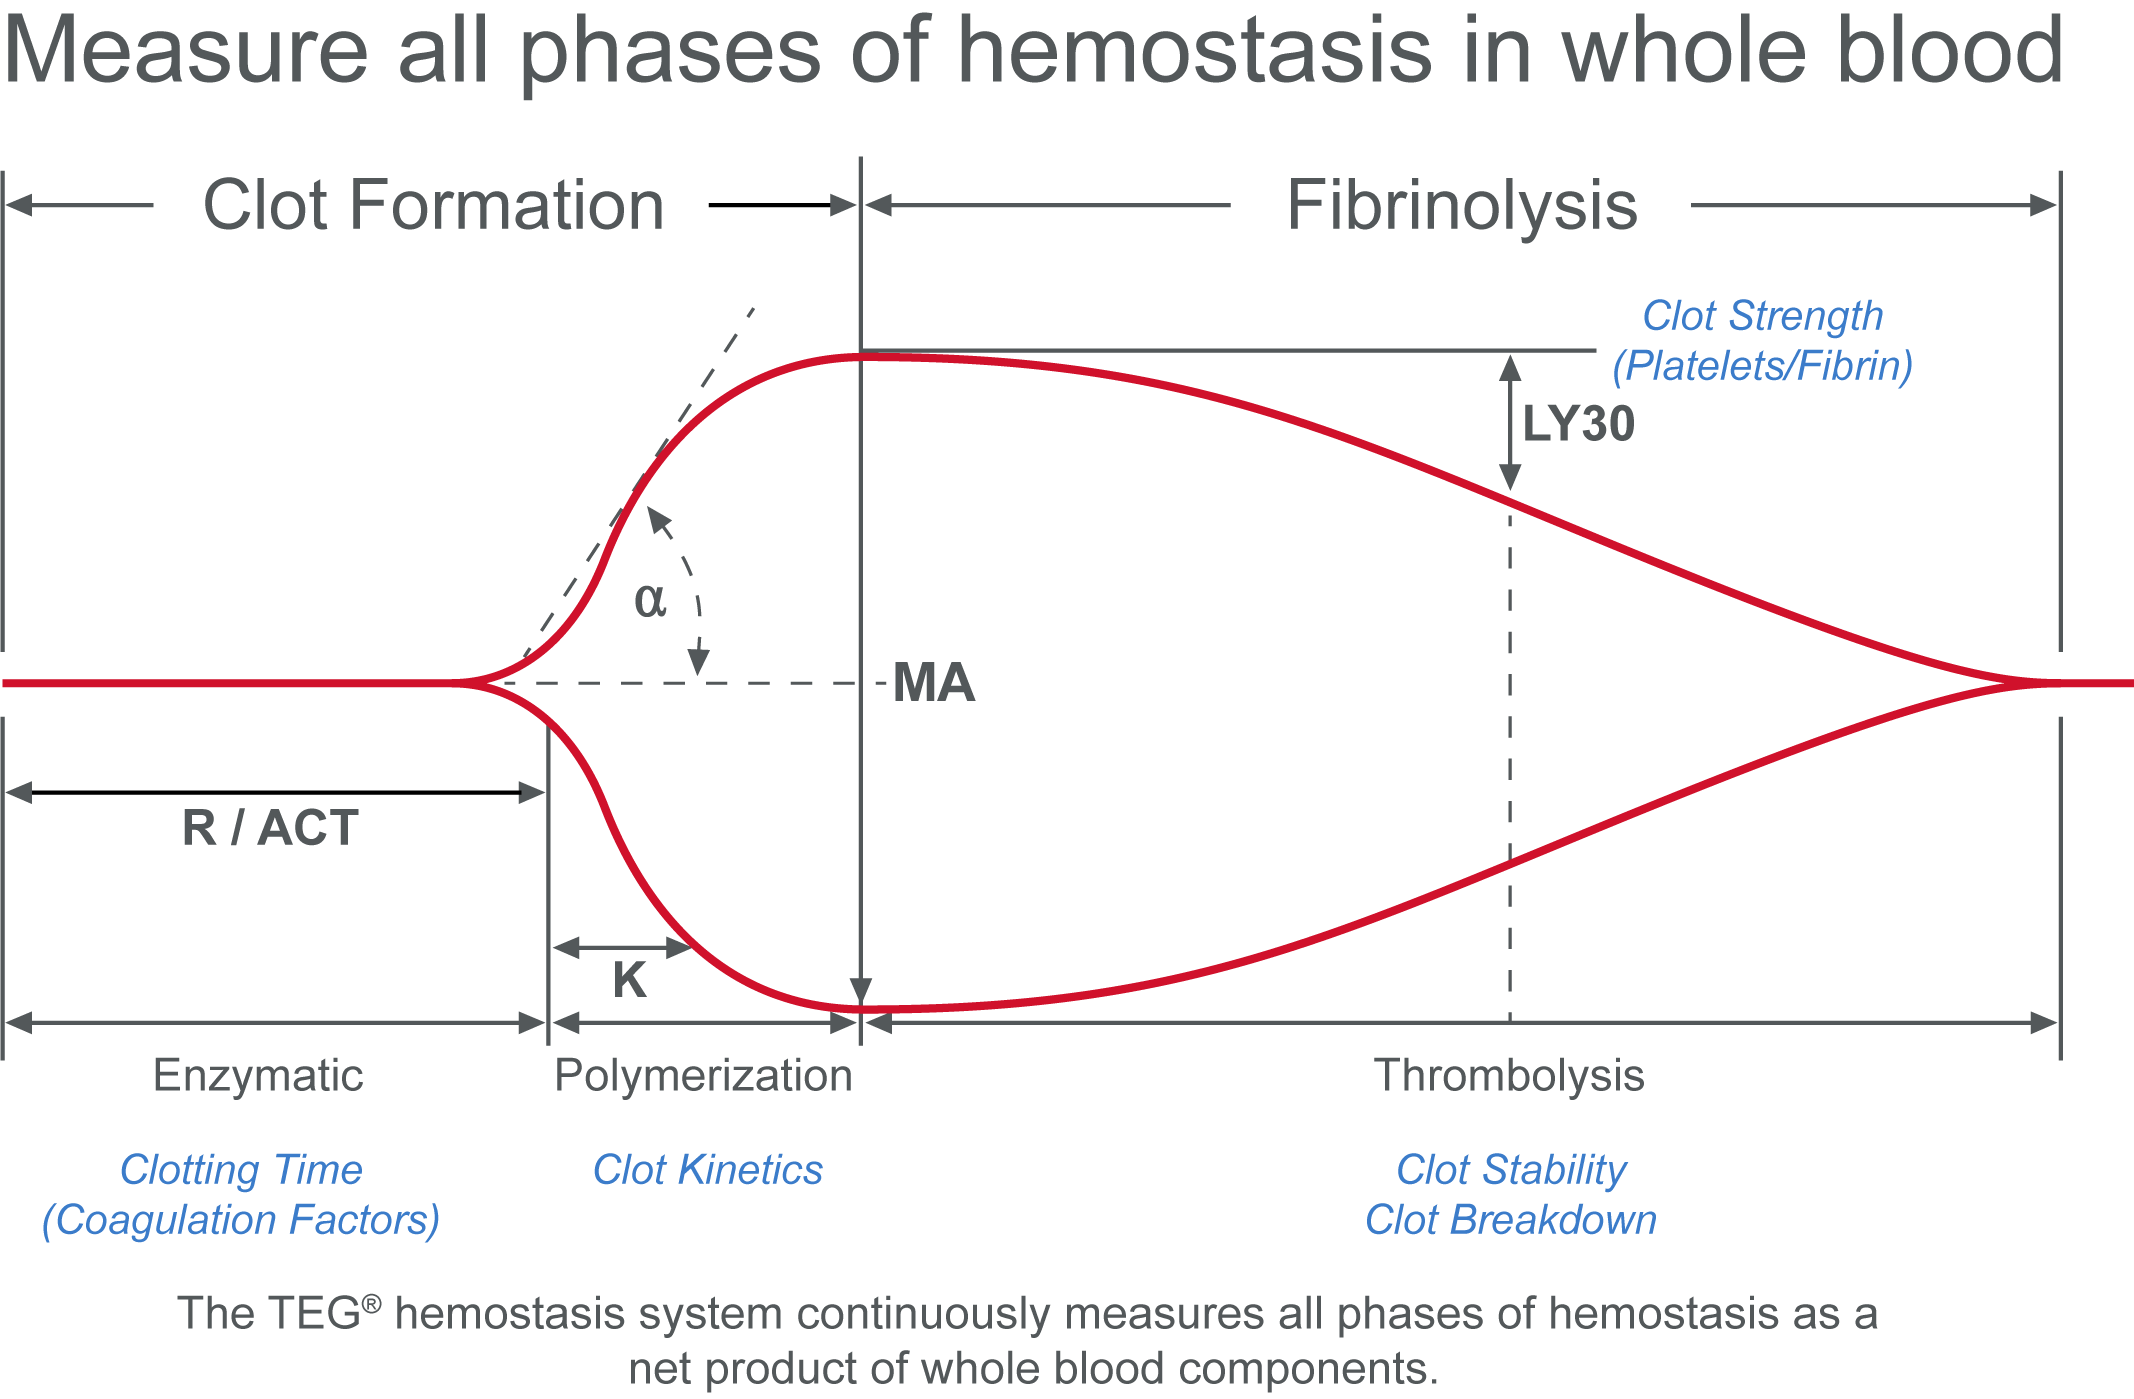 Measure all phases of hemostasis in whole blood